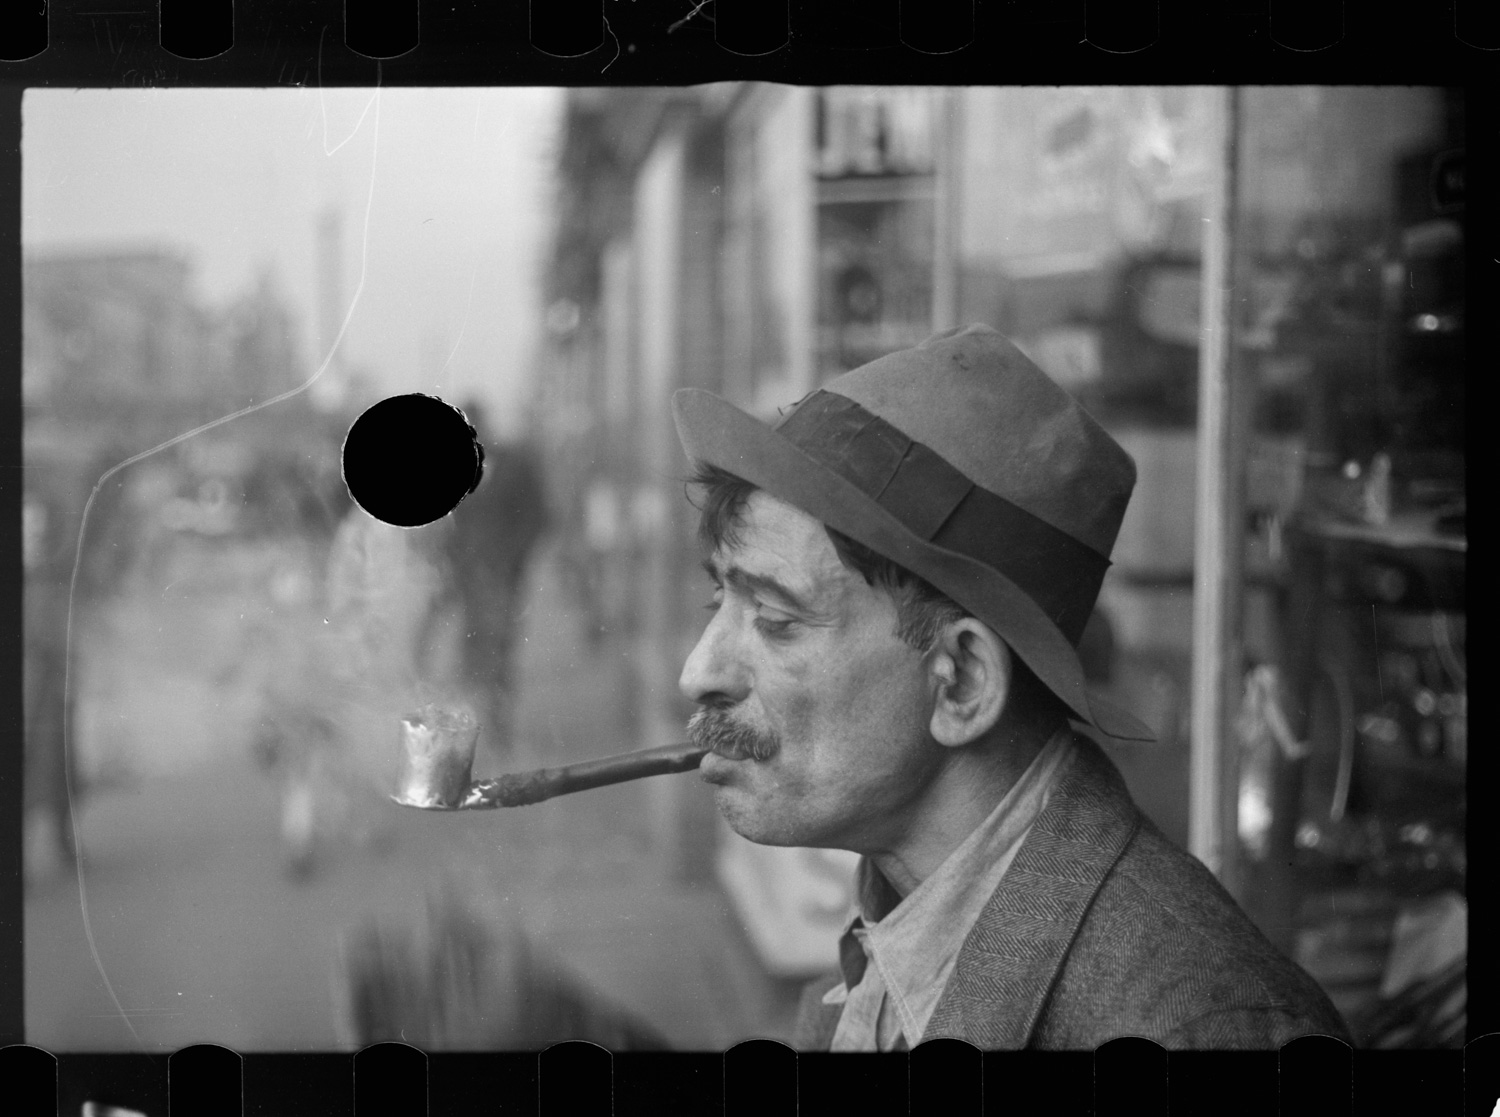 Photograph of a white man smoking a pipe. A hole is punched in the blurry background, through the heads of a walking couple.